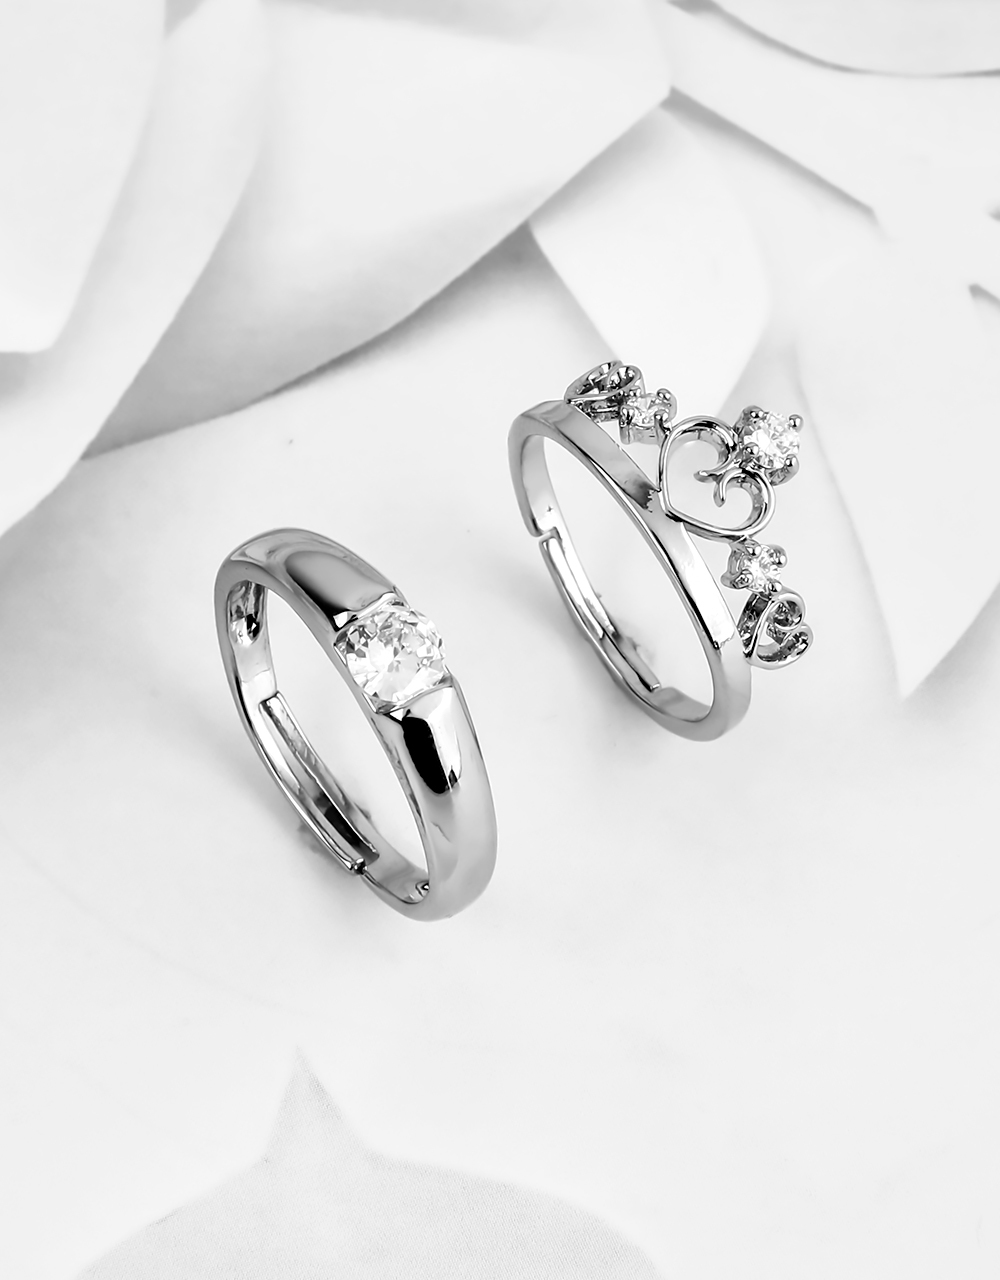 Stylish King & Queen Adorable Couple Rings